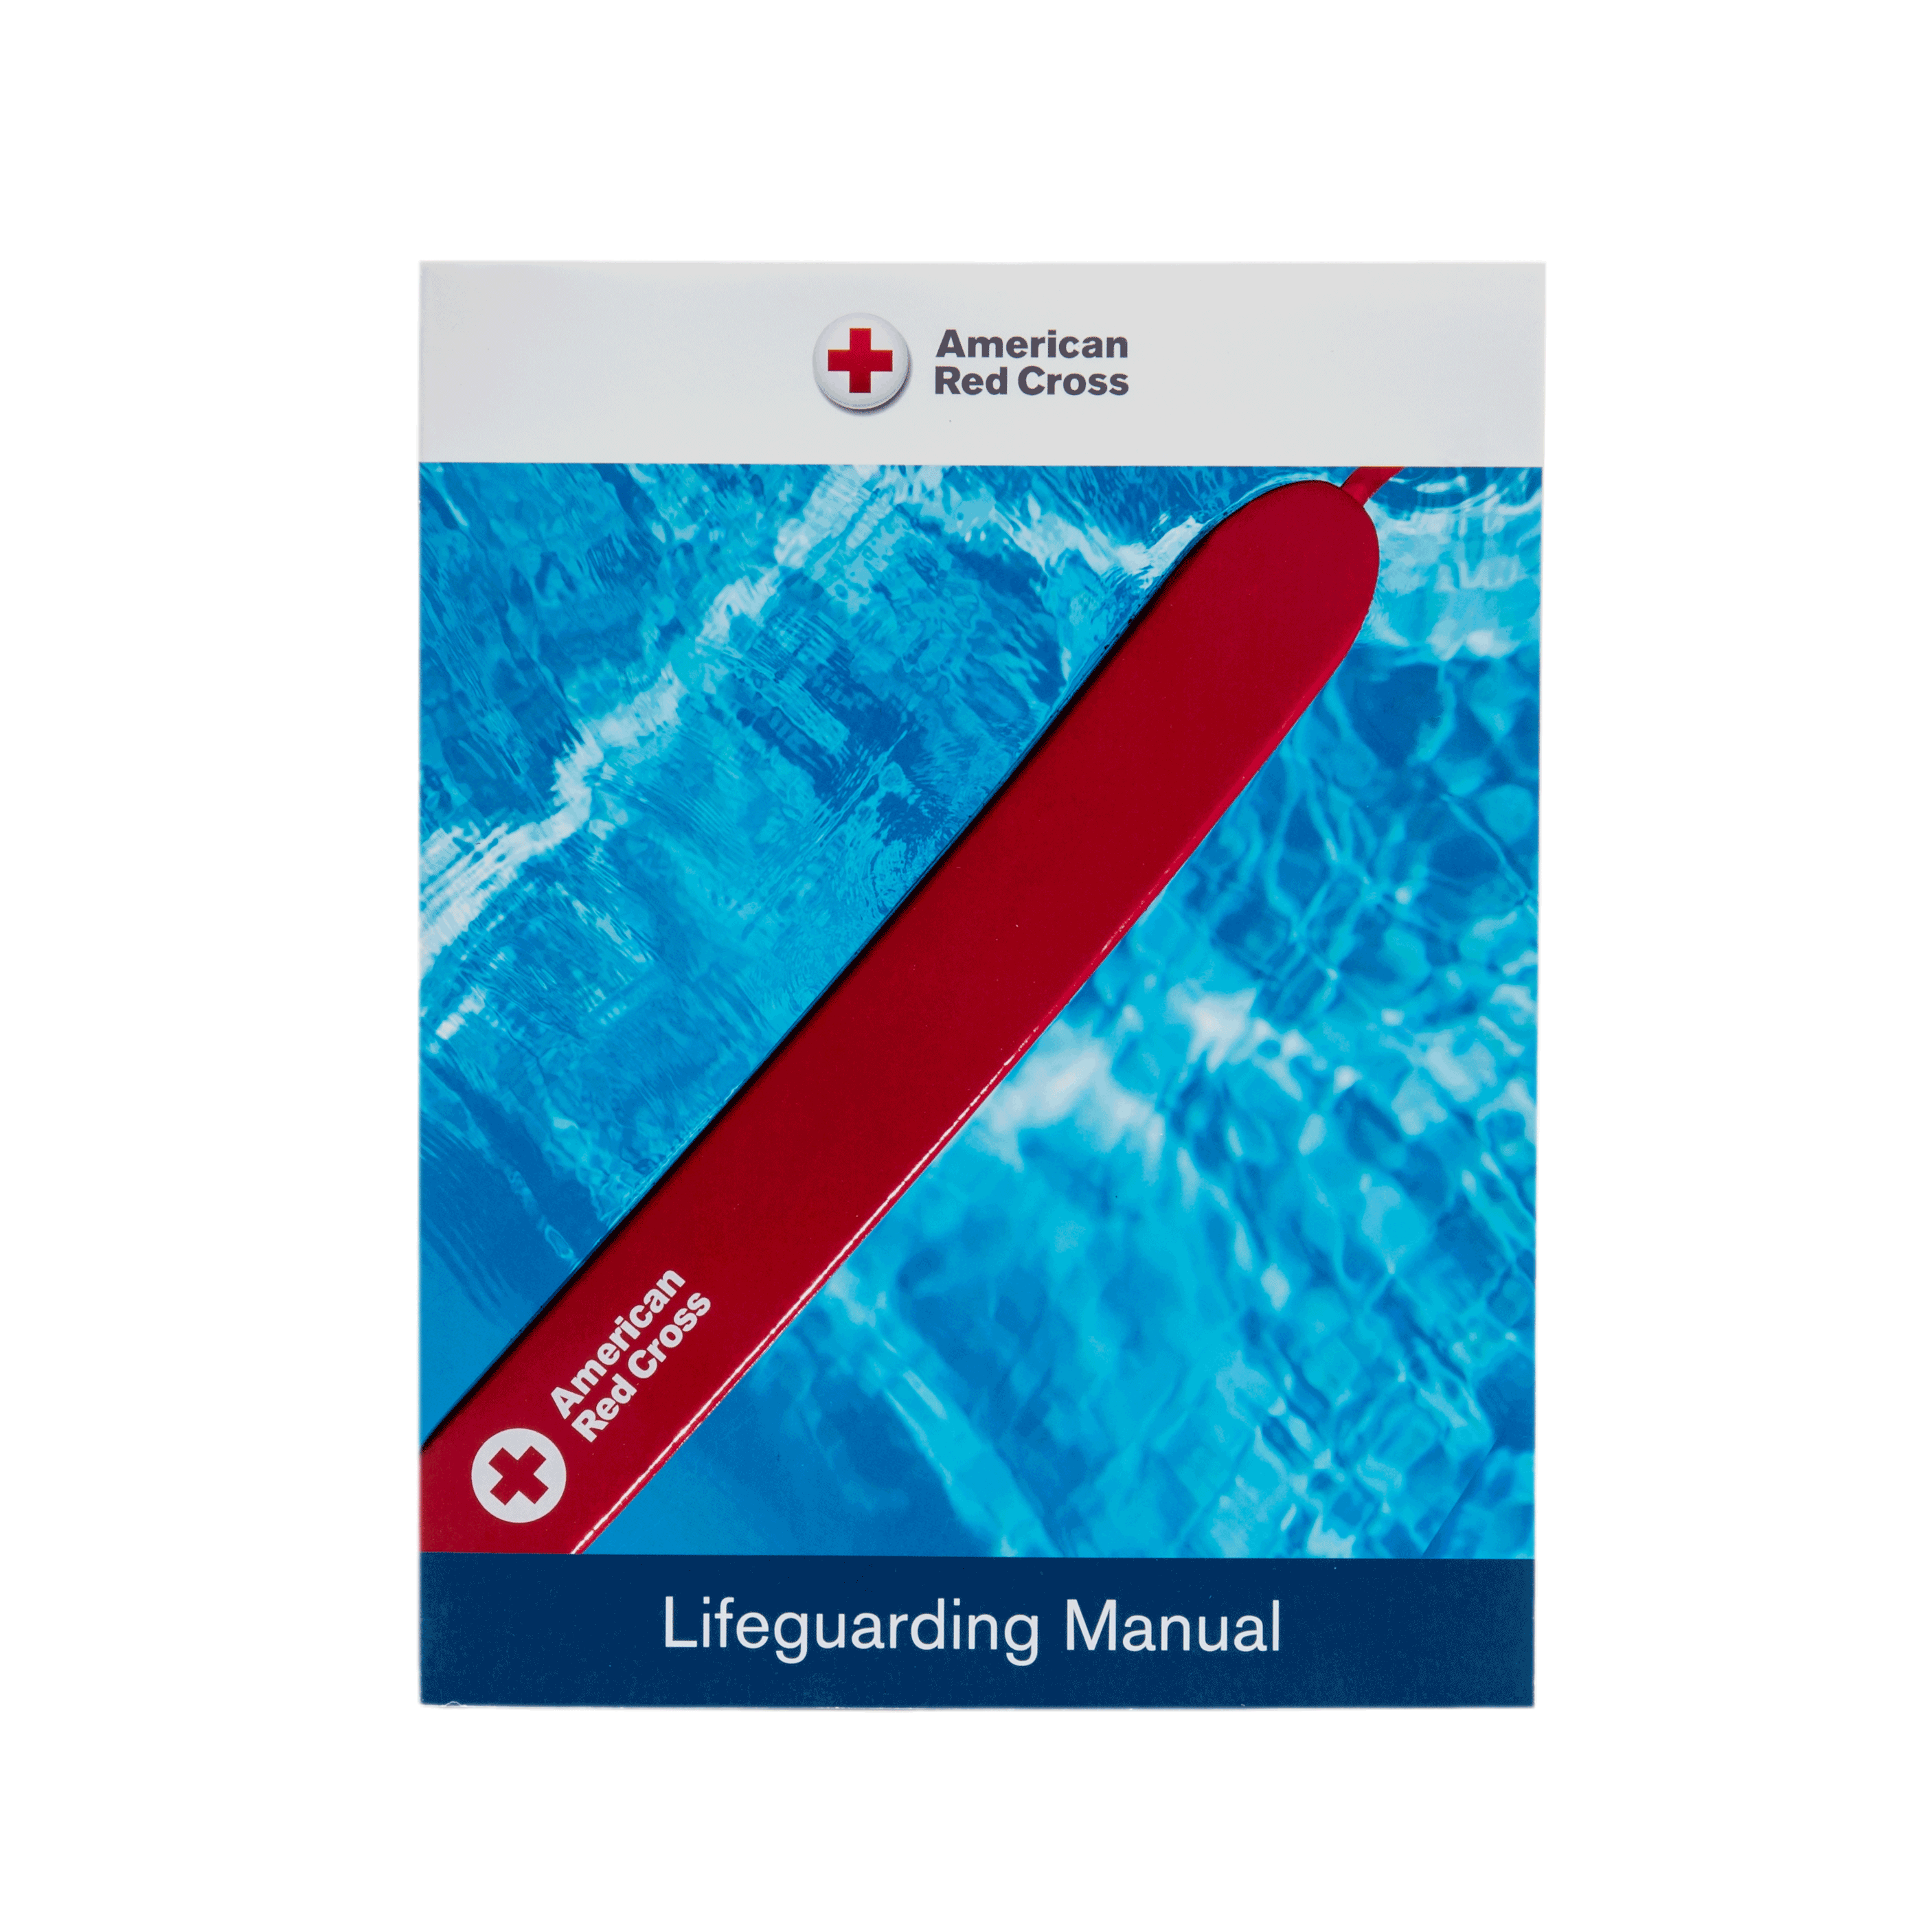 american red cross lifeguarding manual red cross store rh redcross org red cross lifeguard manual pdf red cross lifeguard manual 2018